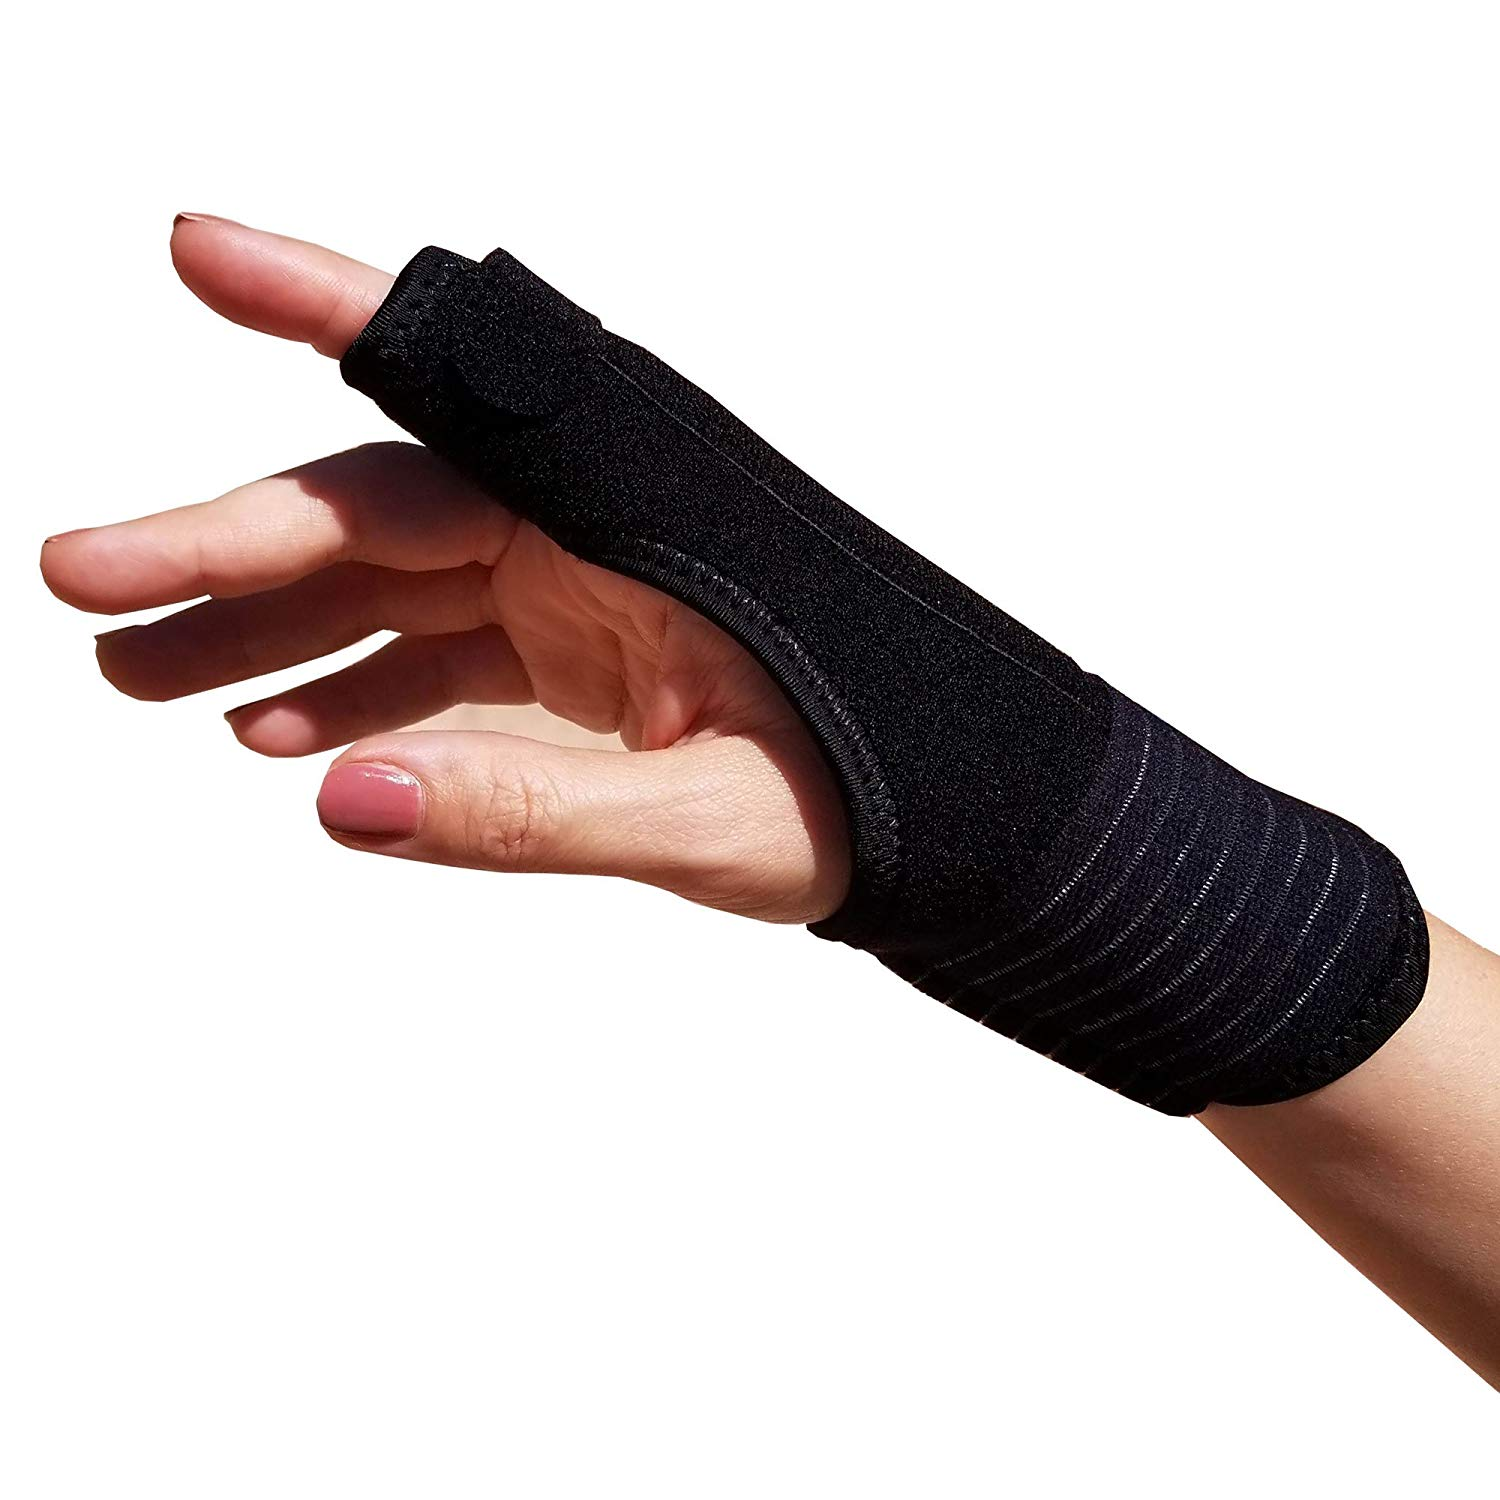 TrustWell Hand and Finger Immobilizer Splint | Thumb Splint, Wrist Brace, Finger Splint, Pinkie Splint Supports Hand and Wrist | Carpal Tunnel Brace, Arthritis Brace, Tendonitis Brace